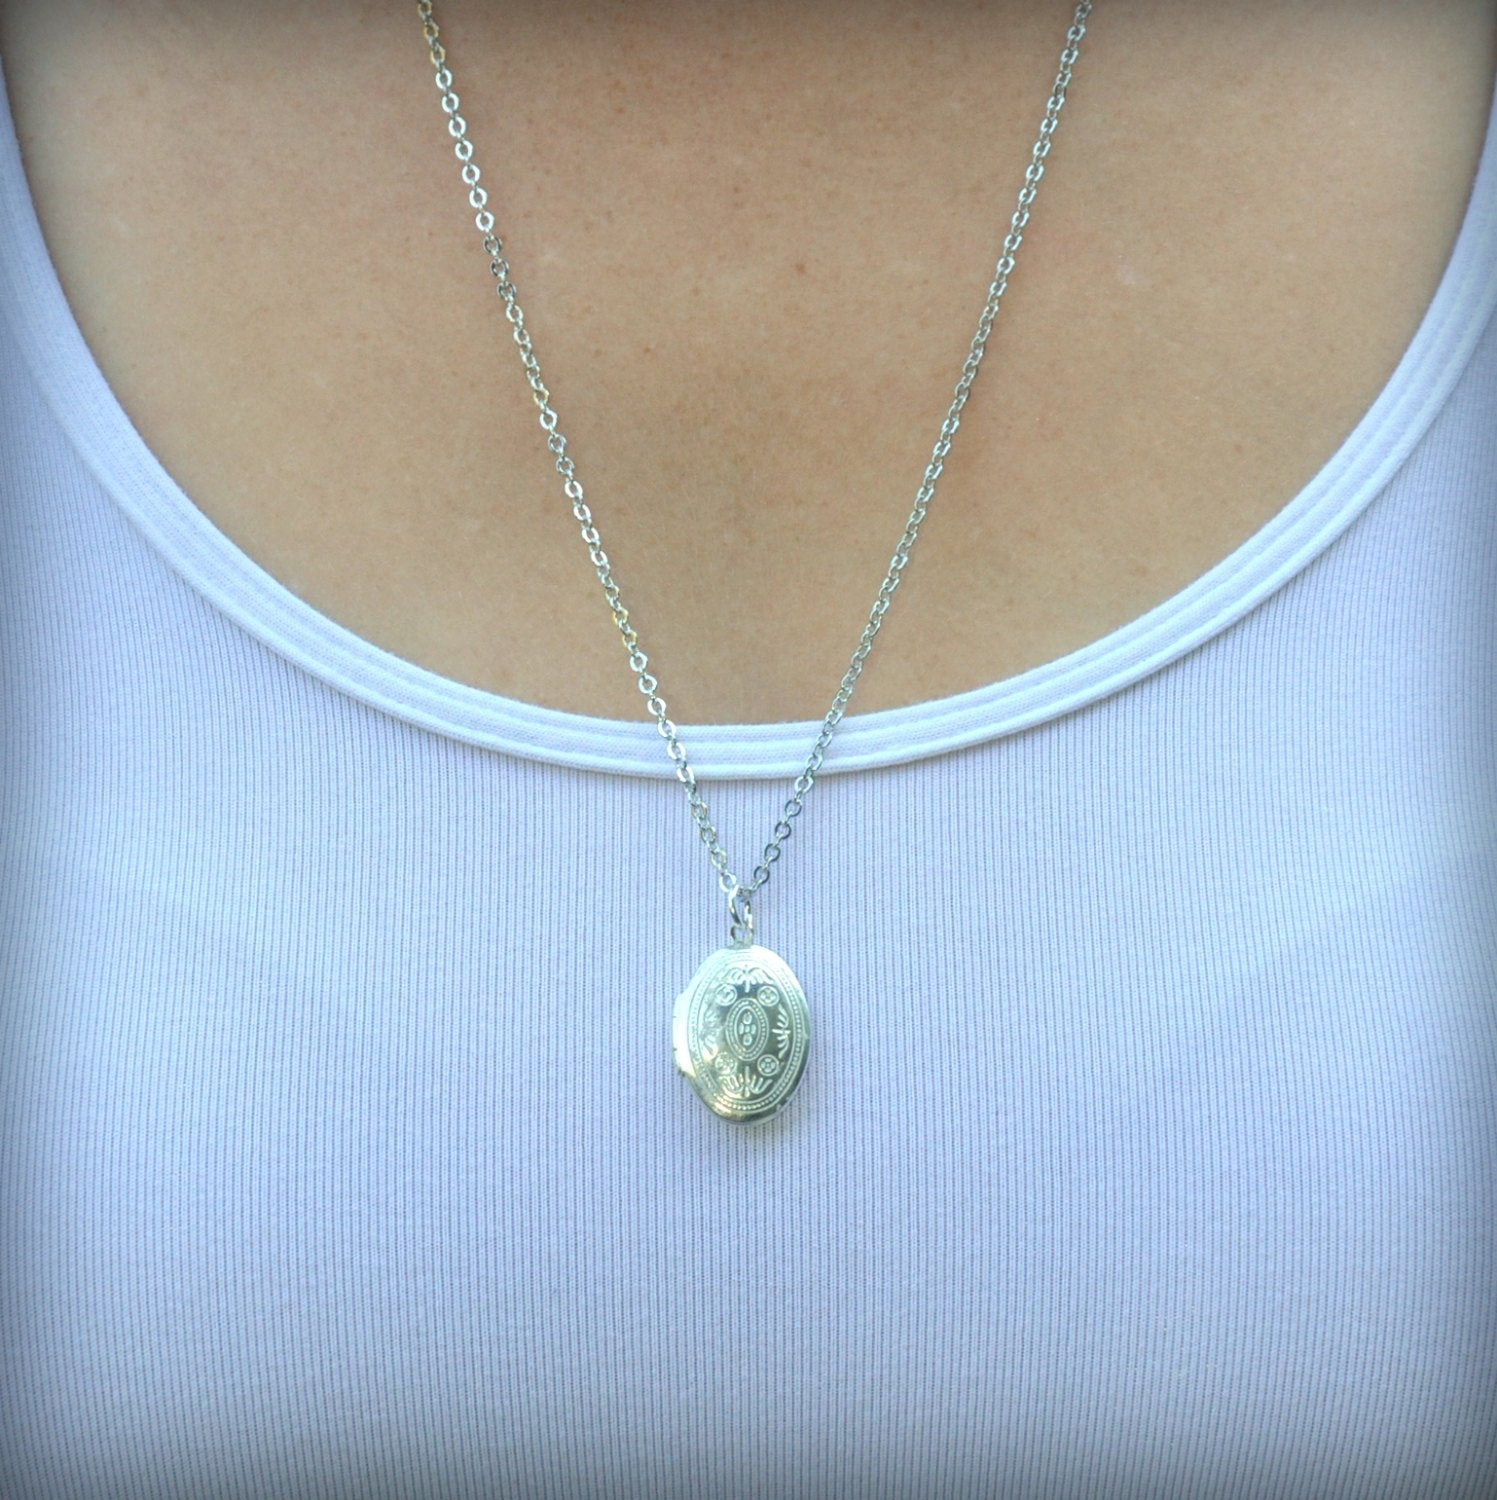 Small White Ornate Locket Necklace -  Oval White Pendant Delicate - Simple and Long Fashion - Gwen Delicious Jewelry Designs